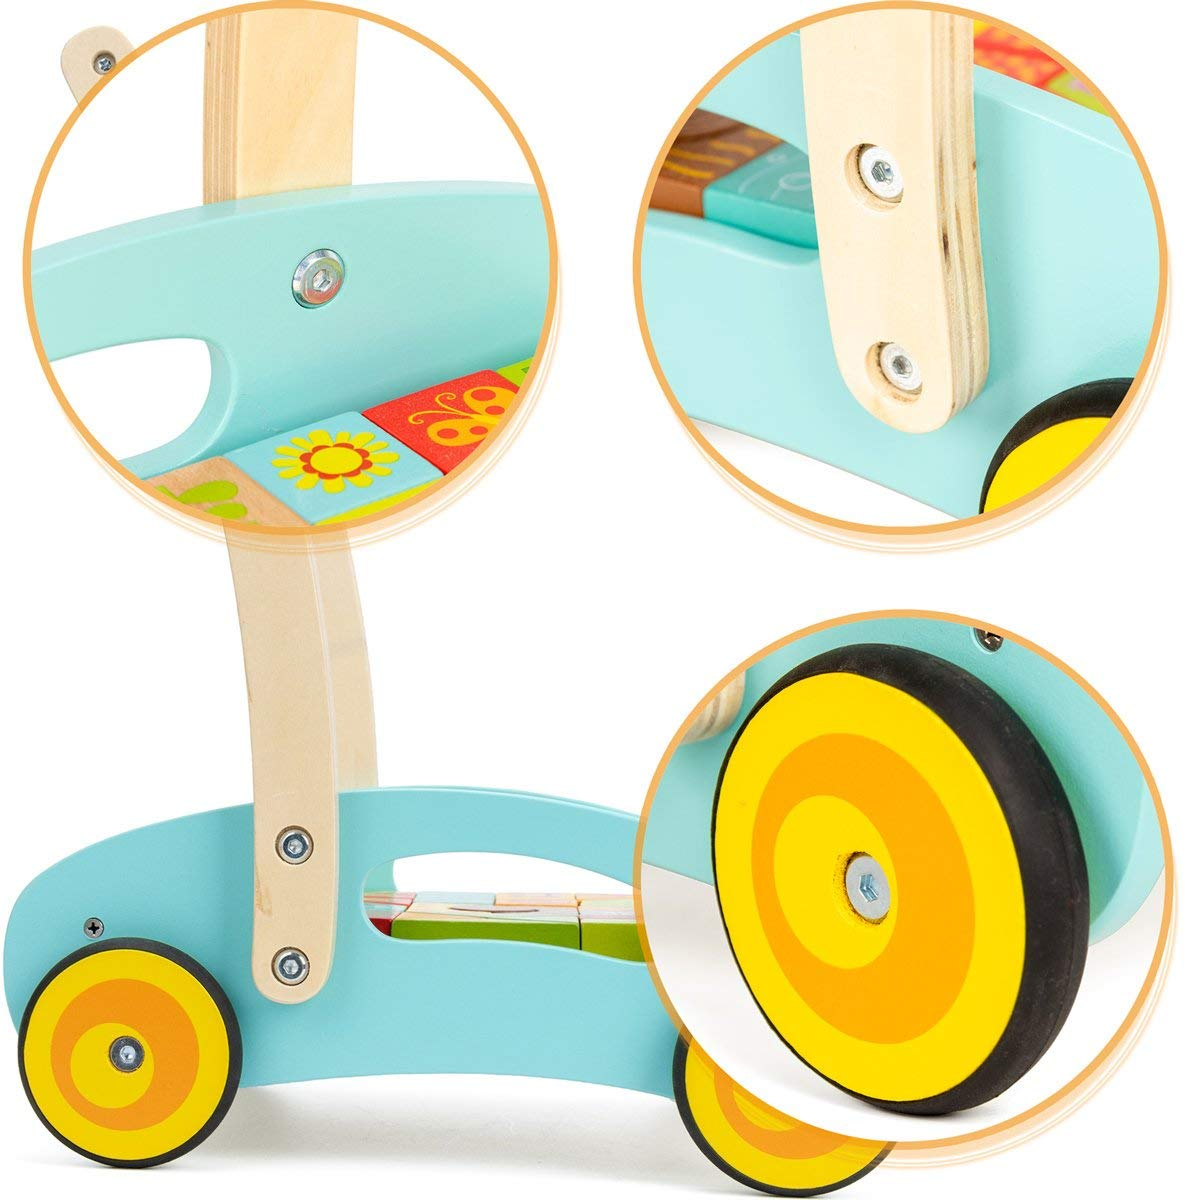 cossy Wooden Baby Learning Walker Toddler Toys for 1 Year Old Forest Theme Blocks /& Roll Cart Push Toy Updated Version 37 Pcs